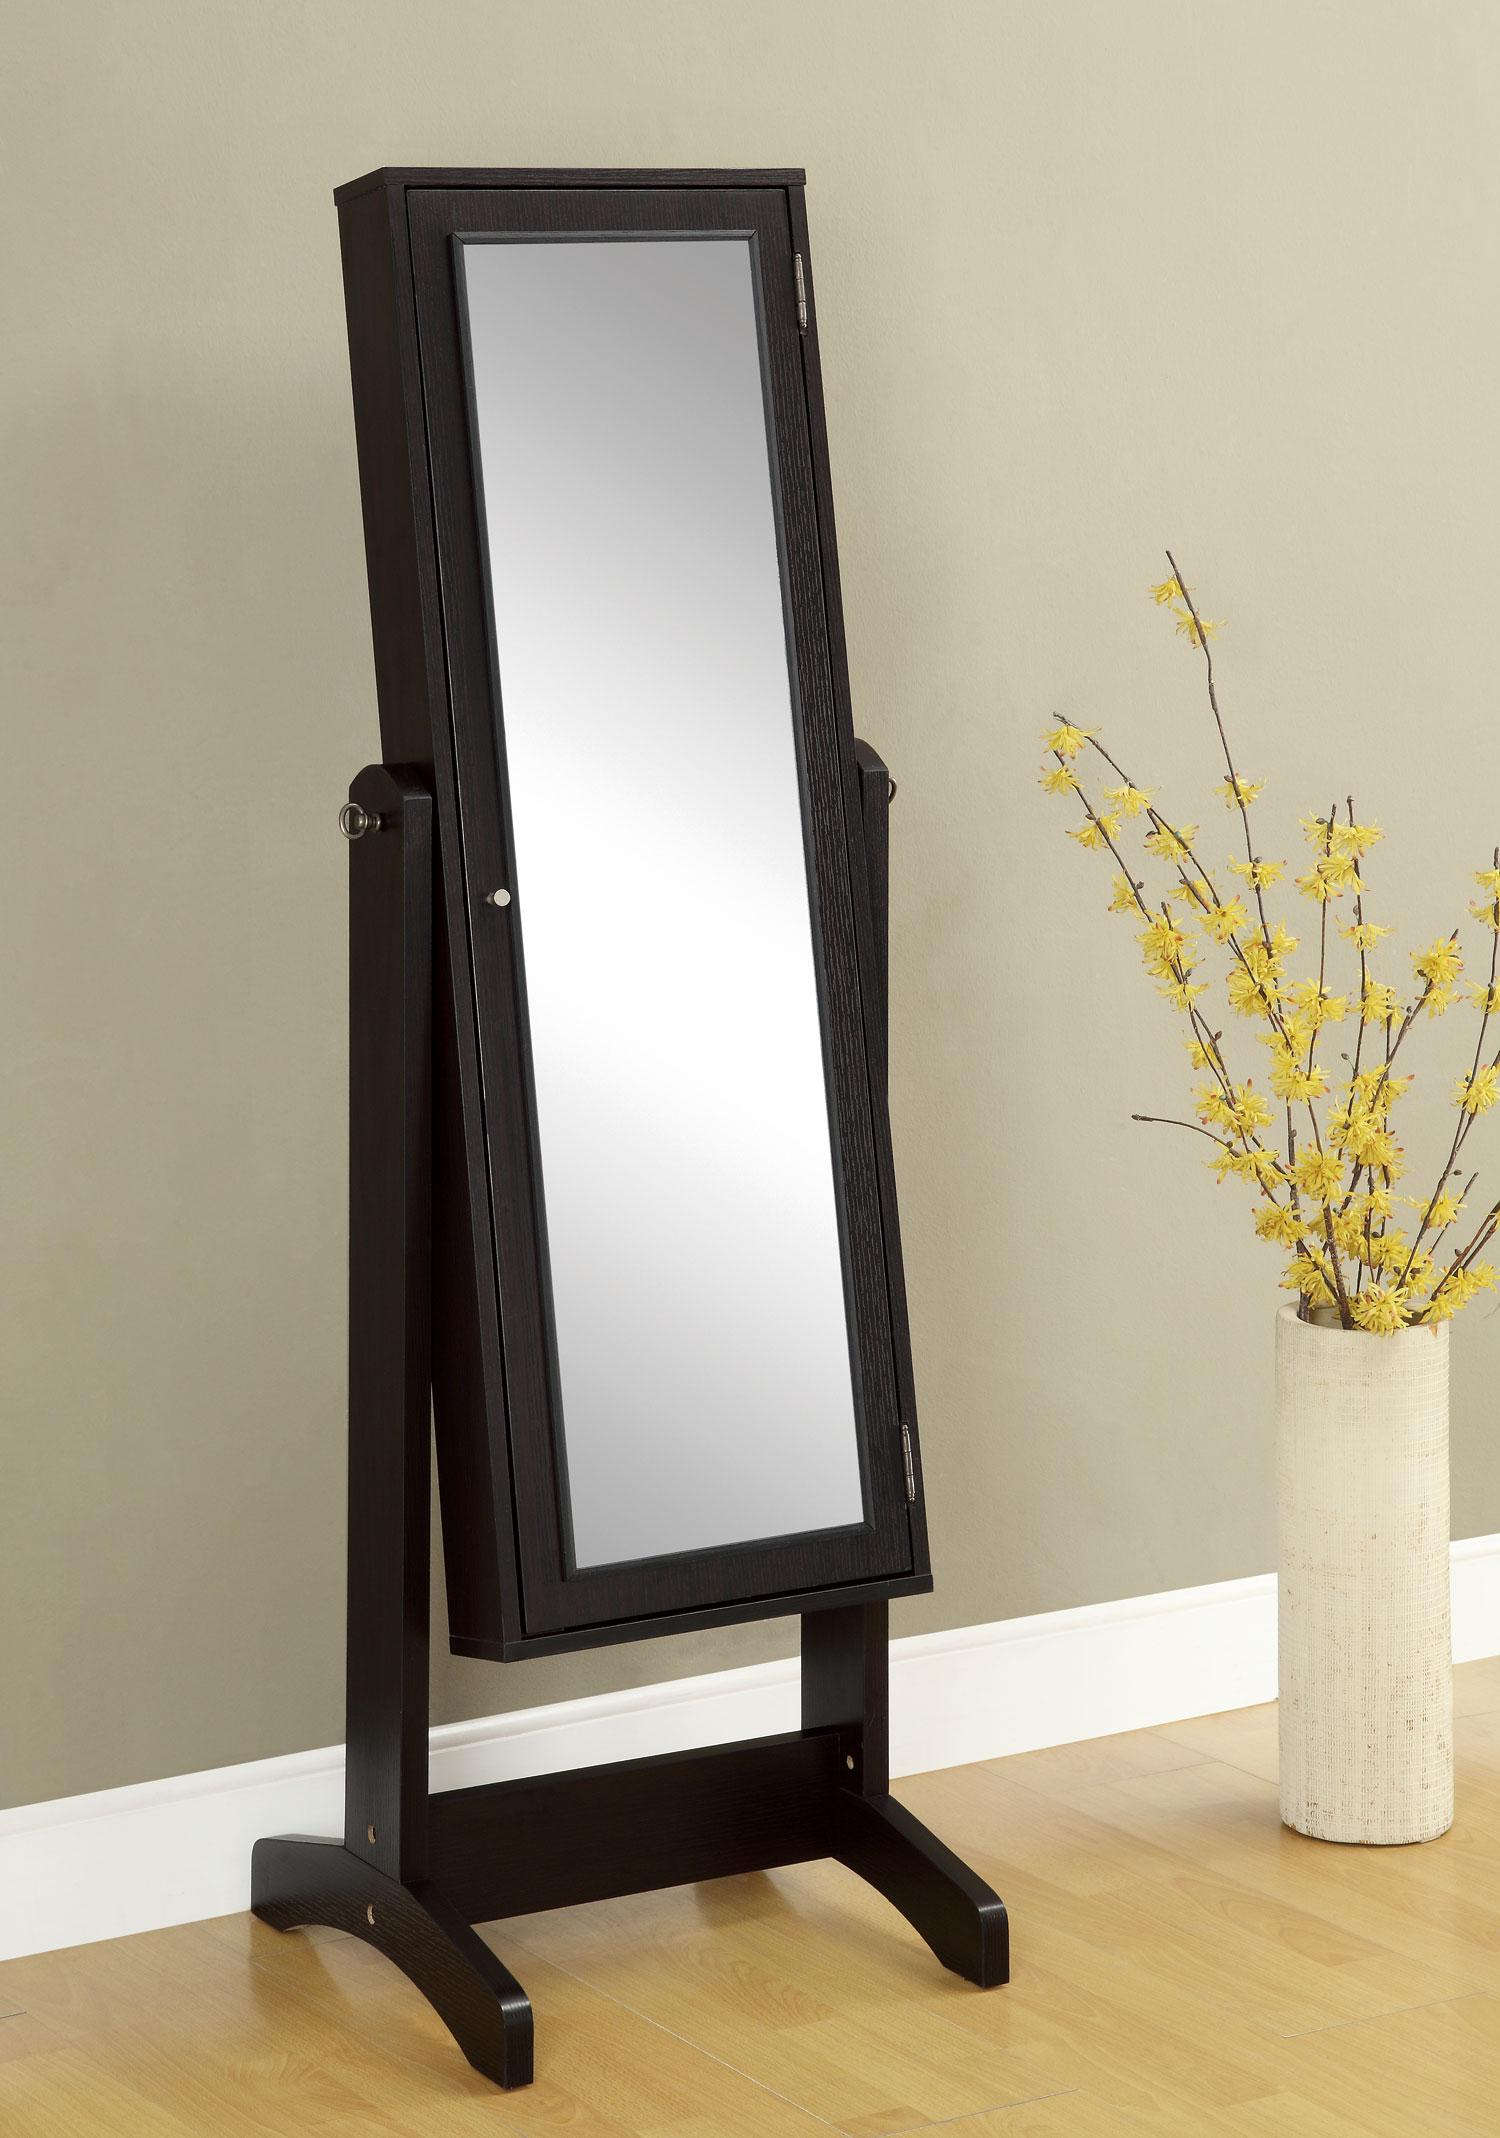 chic wooden standing mirror jewelry armoire in black before the olive wall matched with wooden floor for living room decor ideas